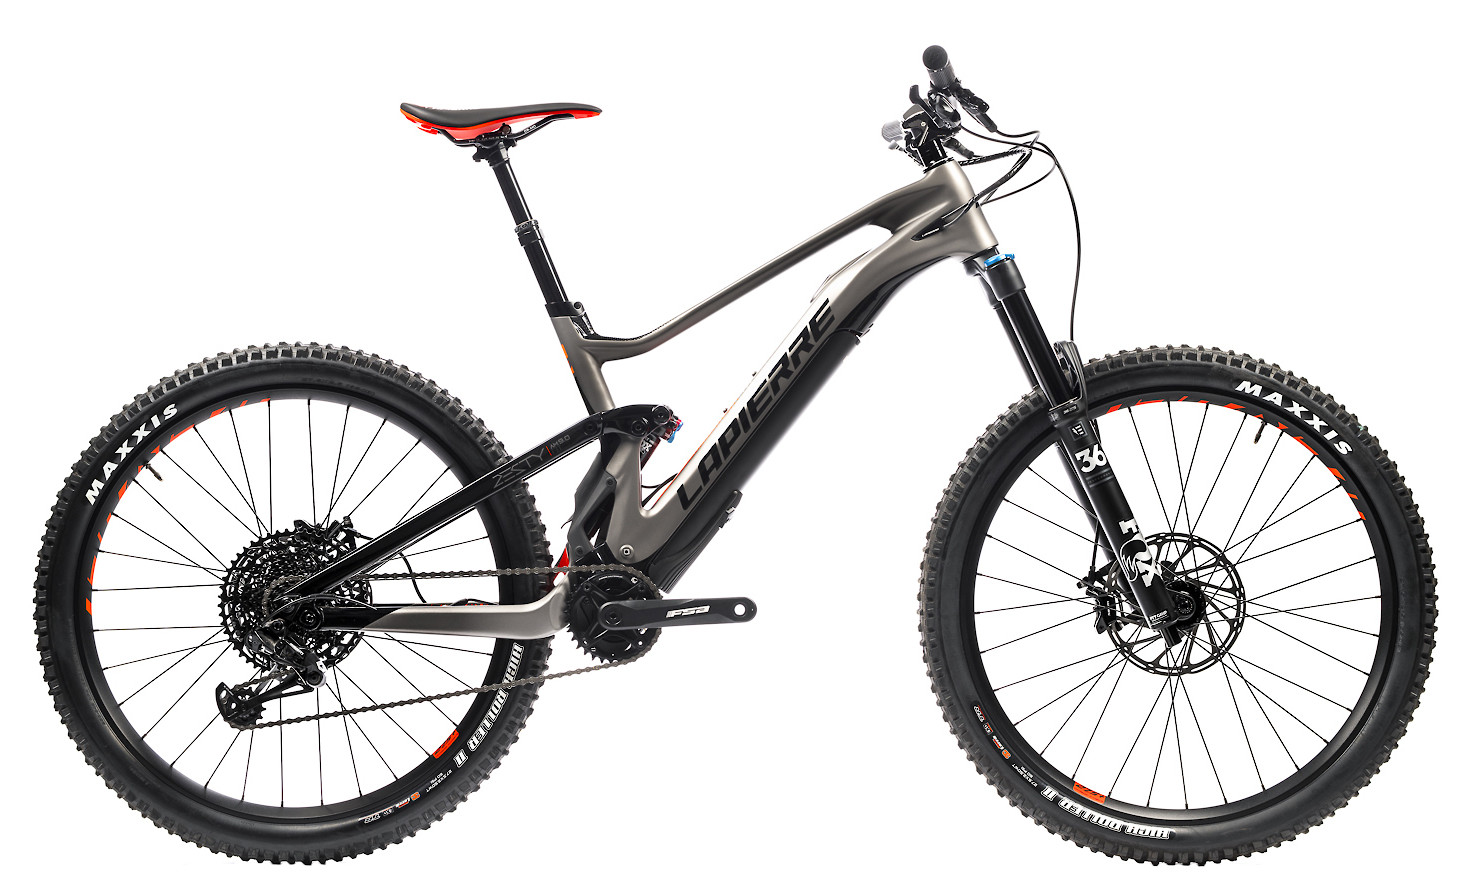 2019 Lapierre eZesty AM 9 Ultimate